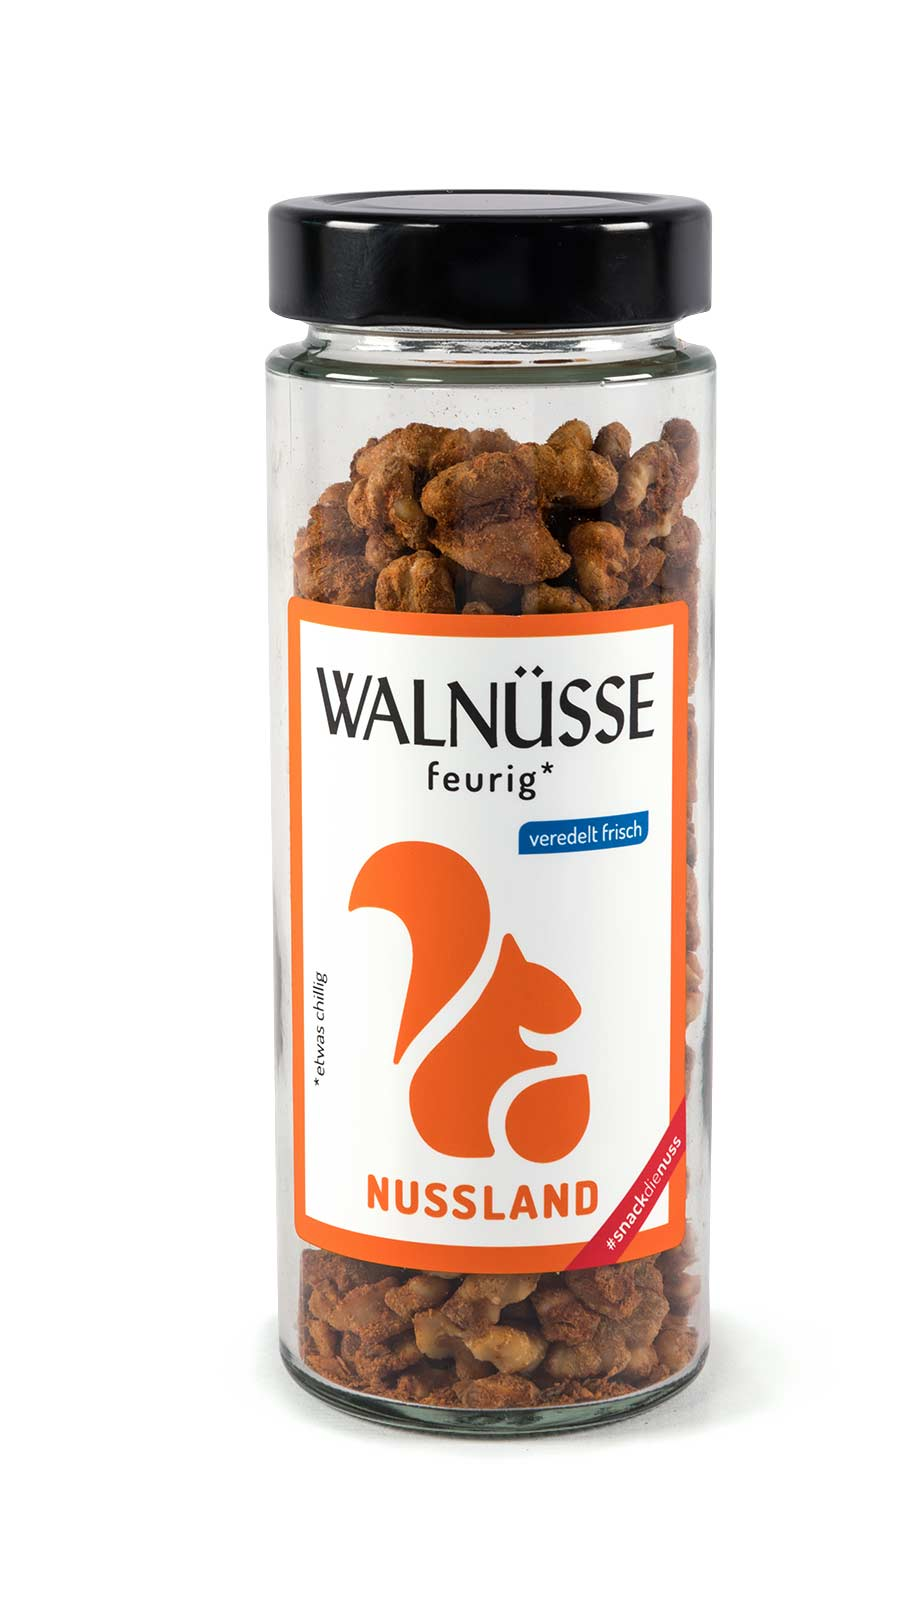 Walnuss-Snack 'feurig'